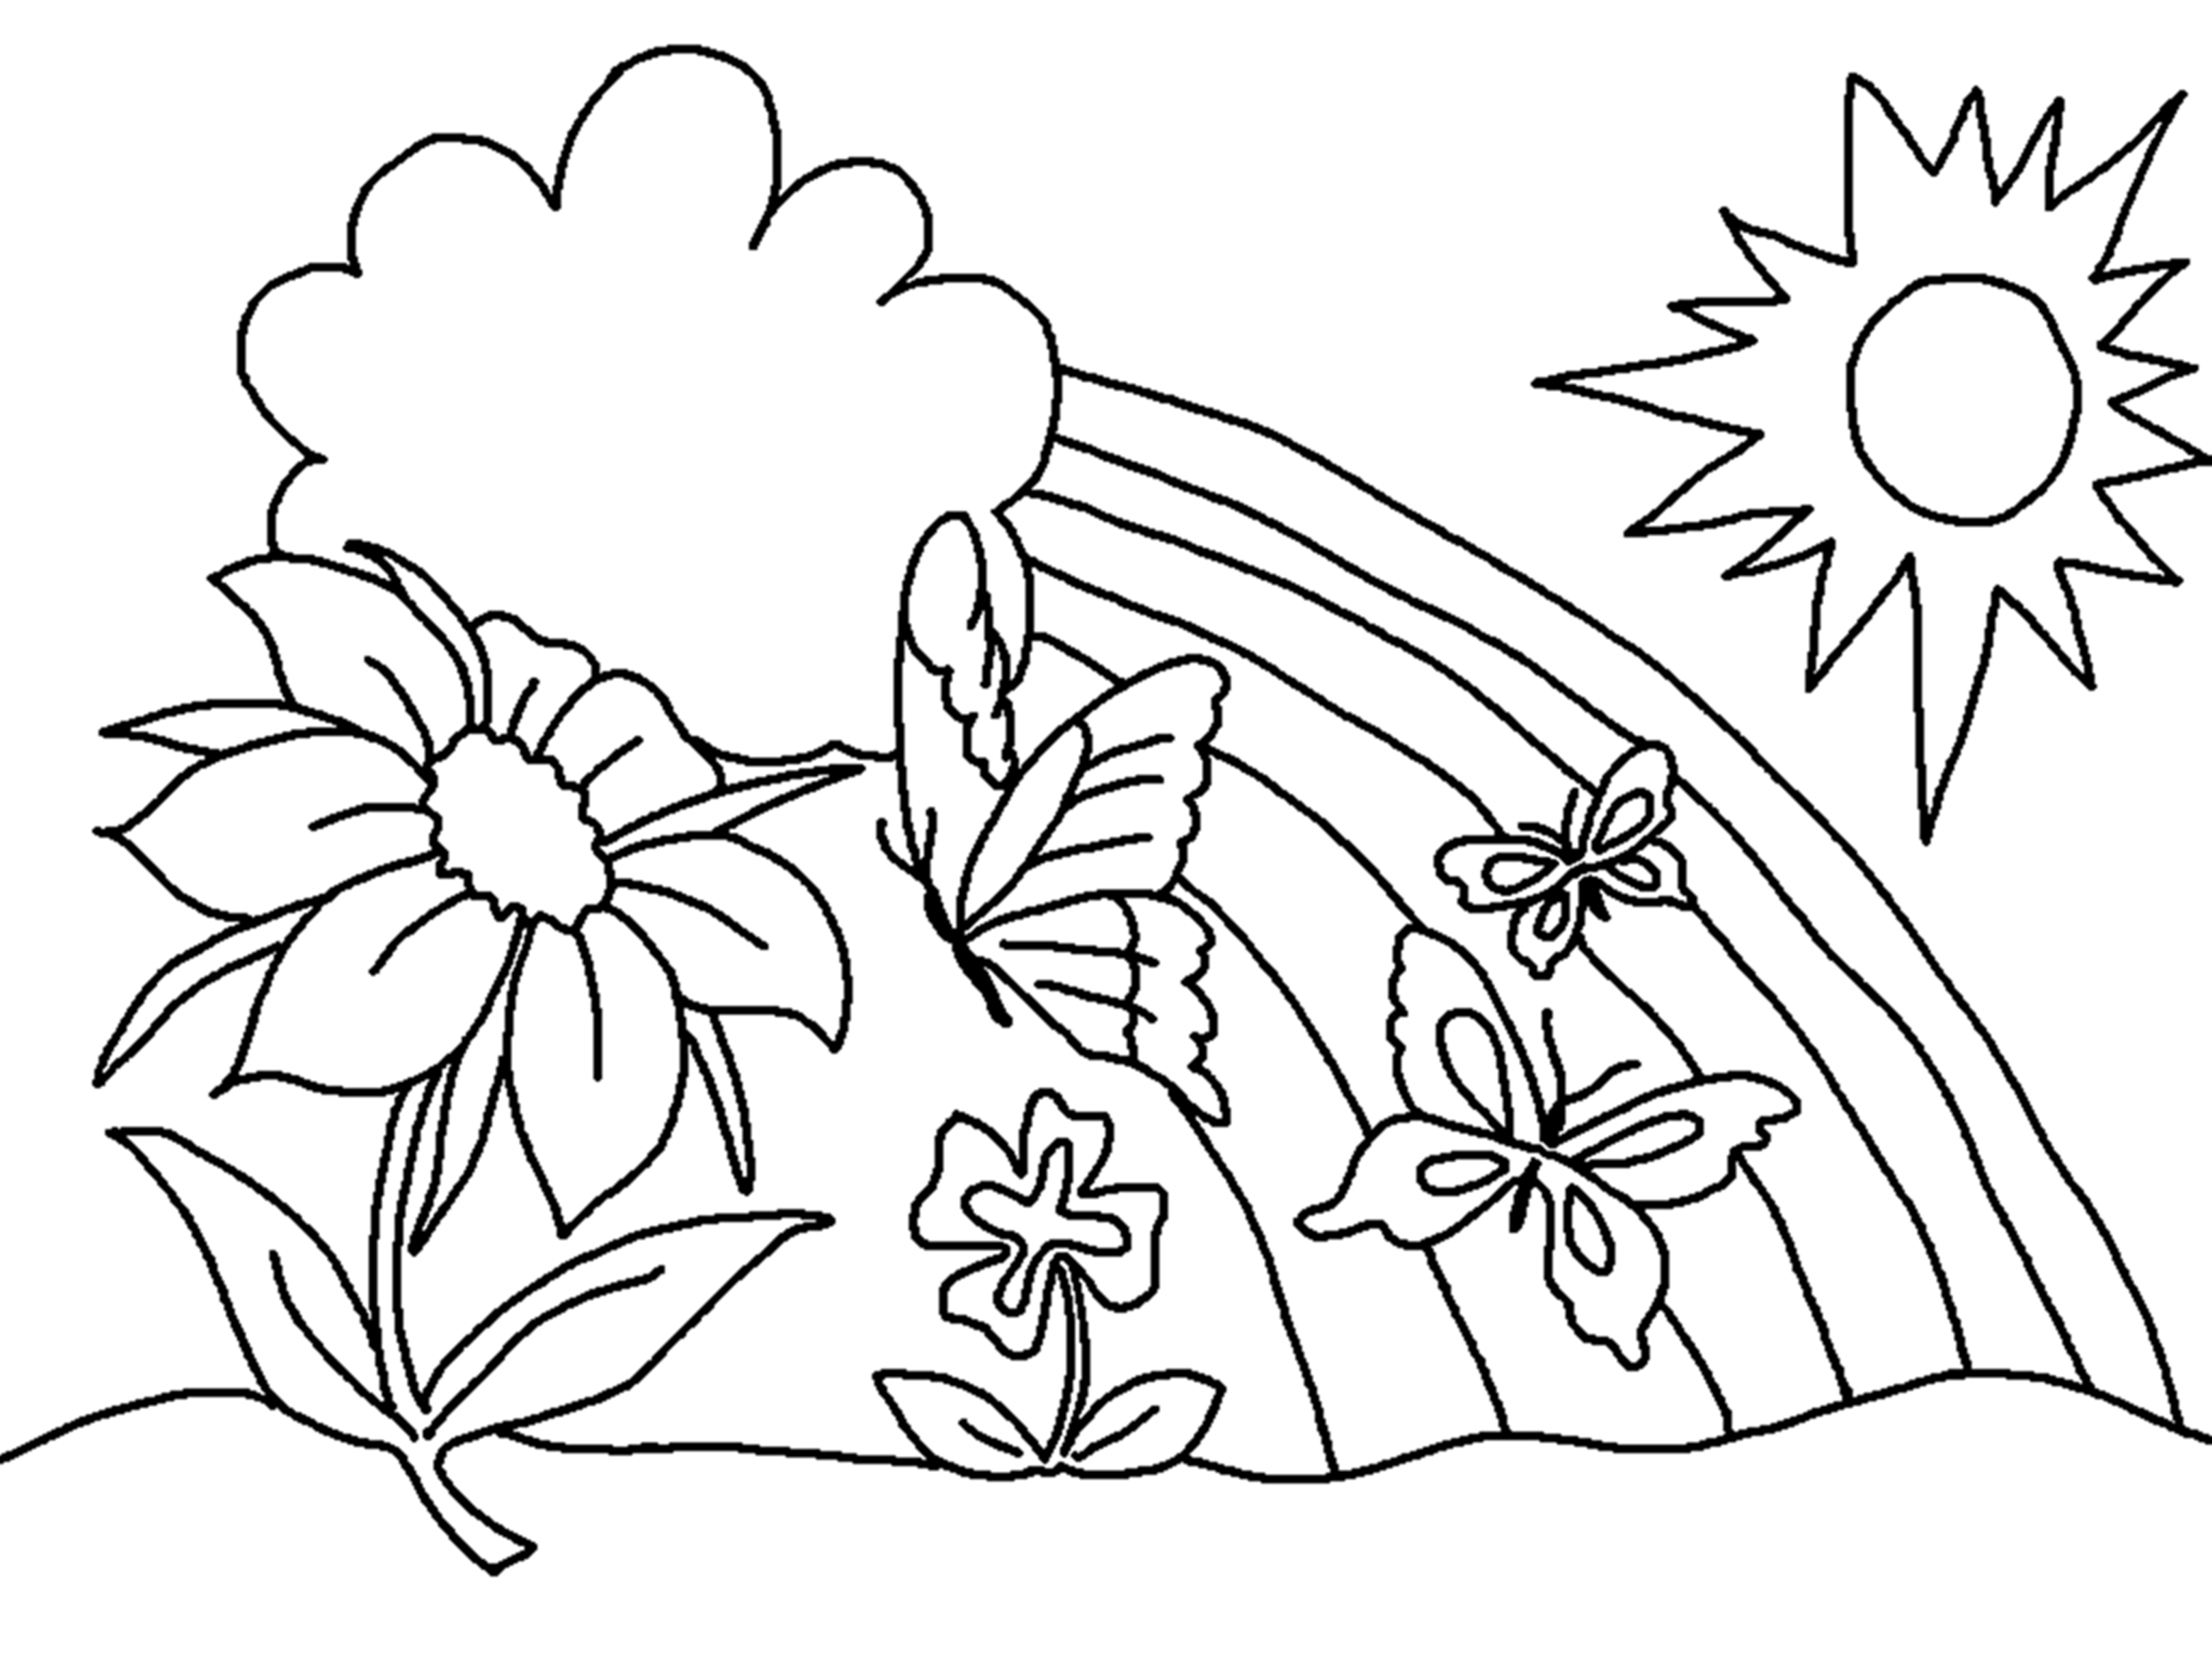 flowers coloring page poppy flowers coloring pages download and print for free page coloring flowers